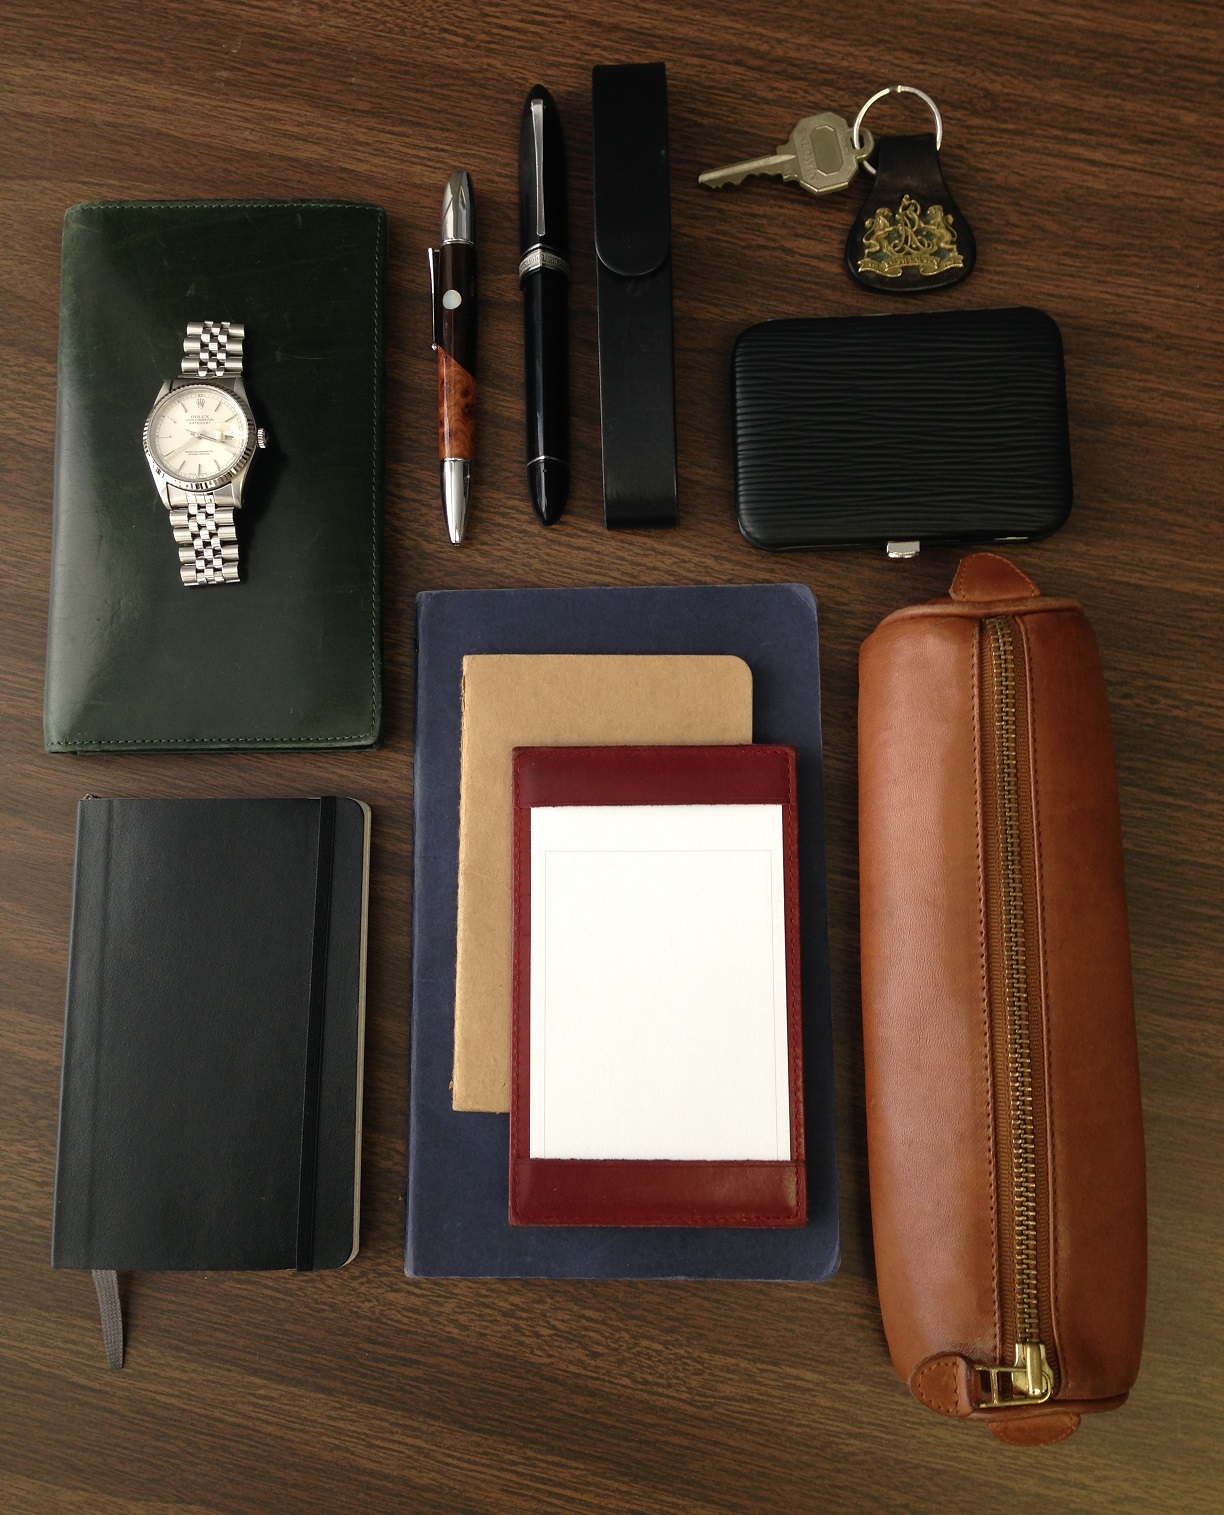 What I Carry Picture OTC: What We Carry Everyday